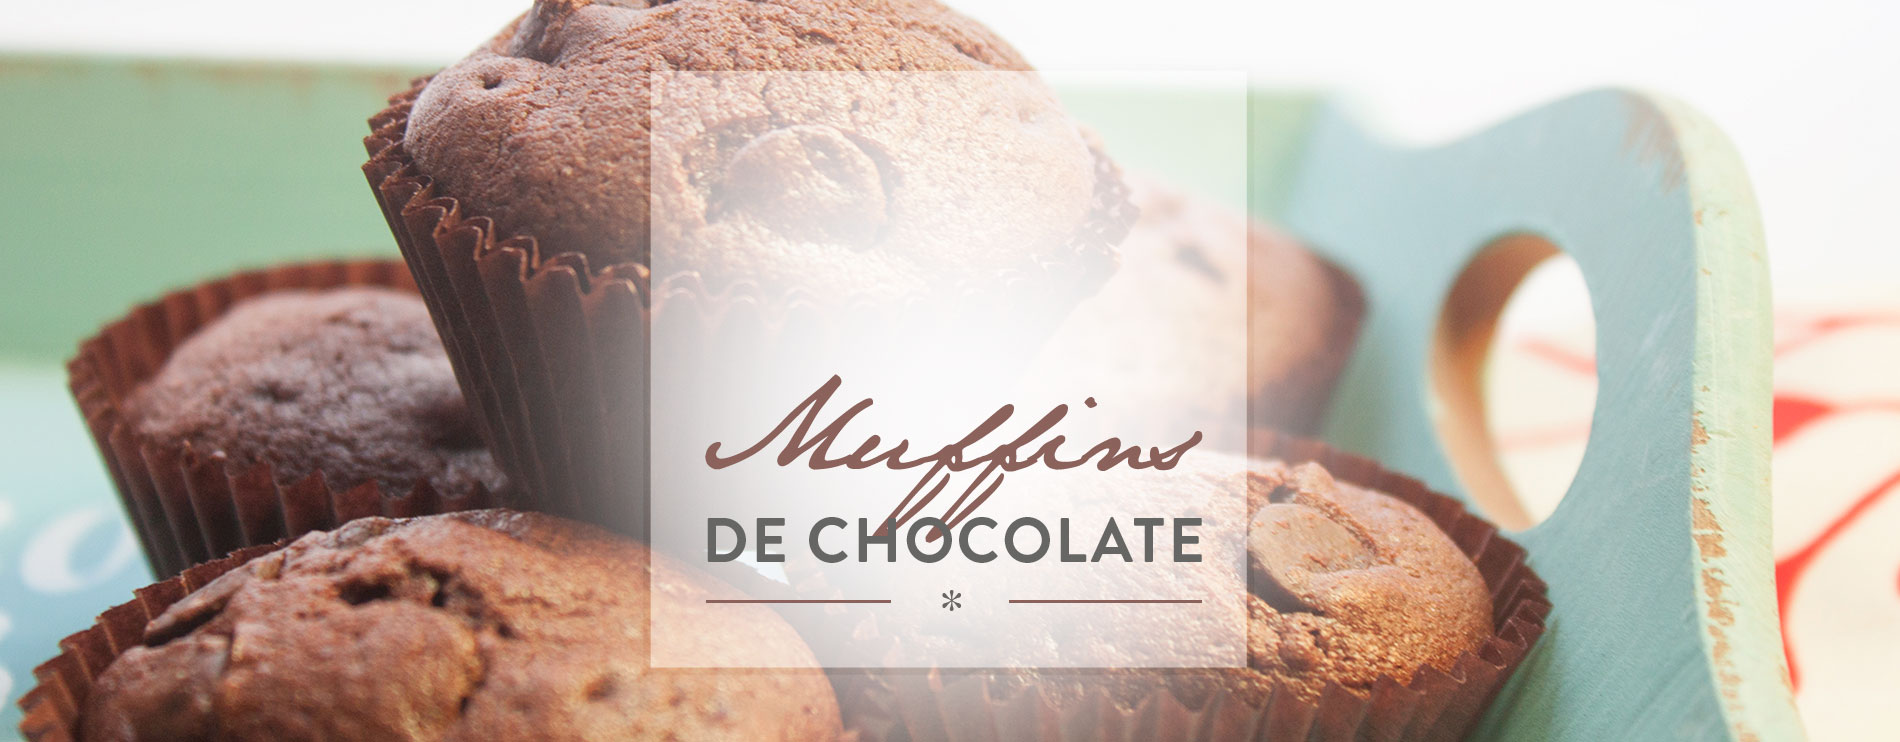 Muffins-de-chocolate_header